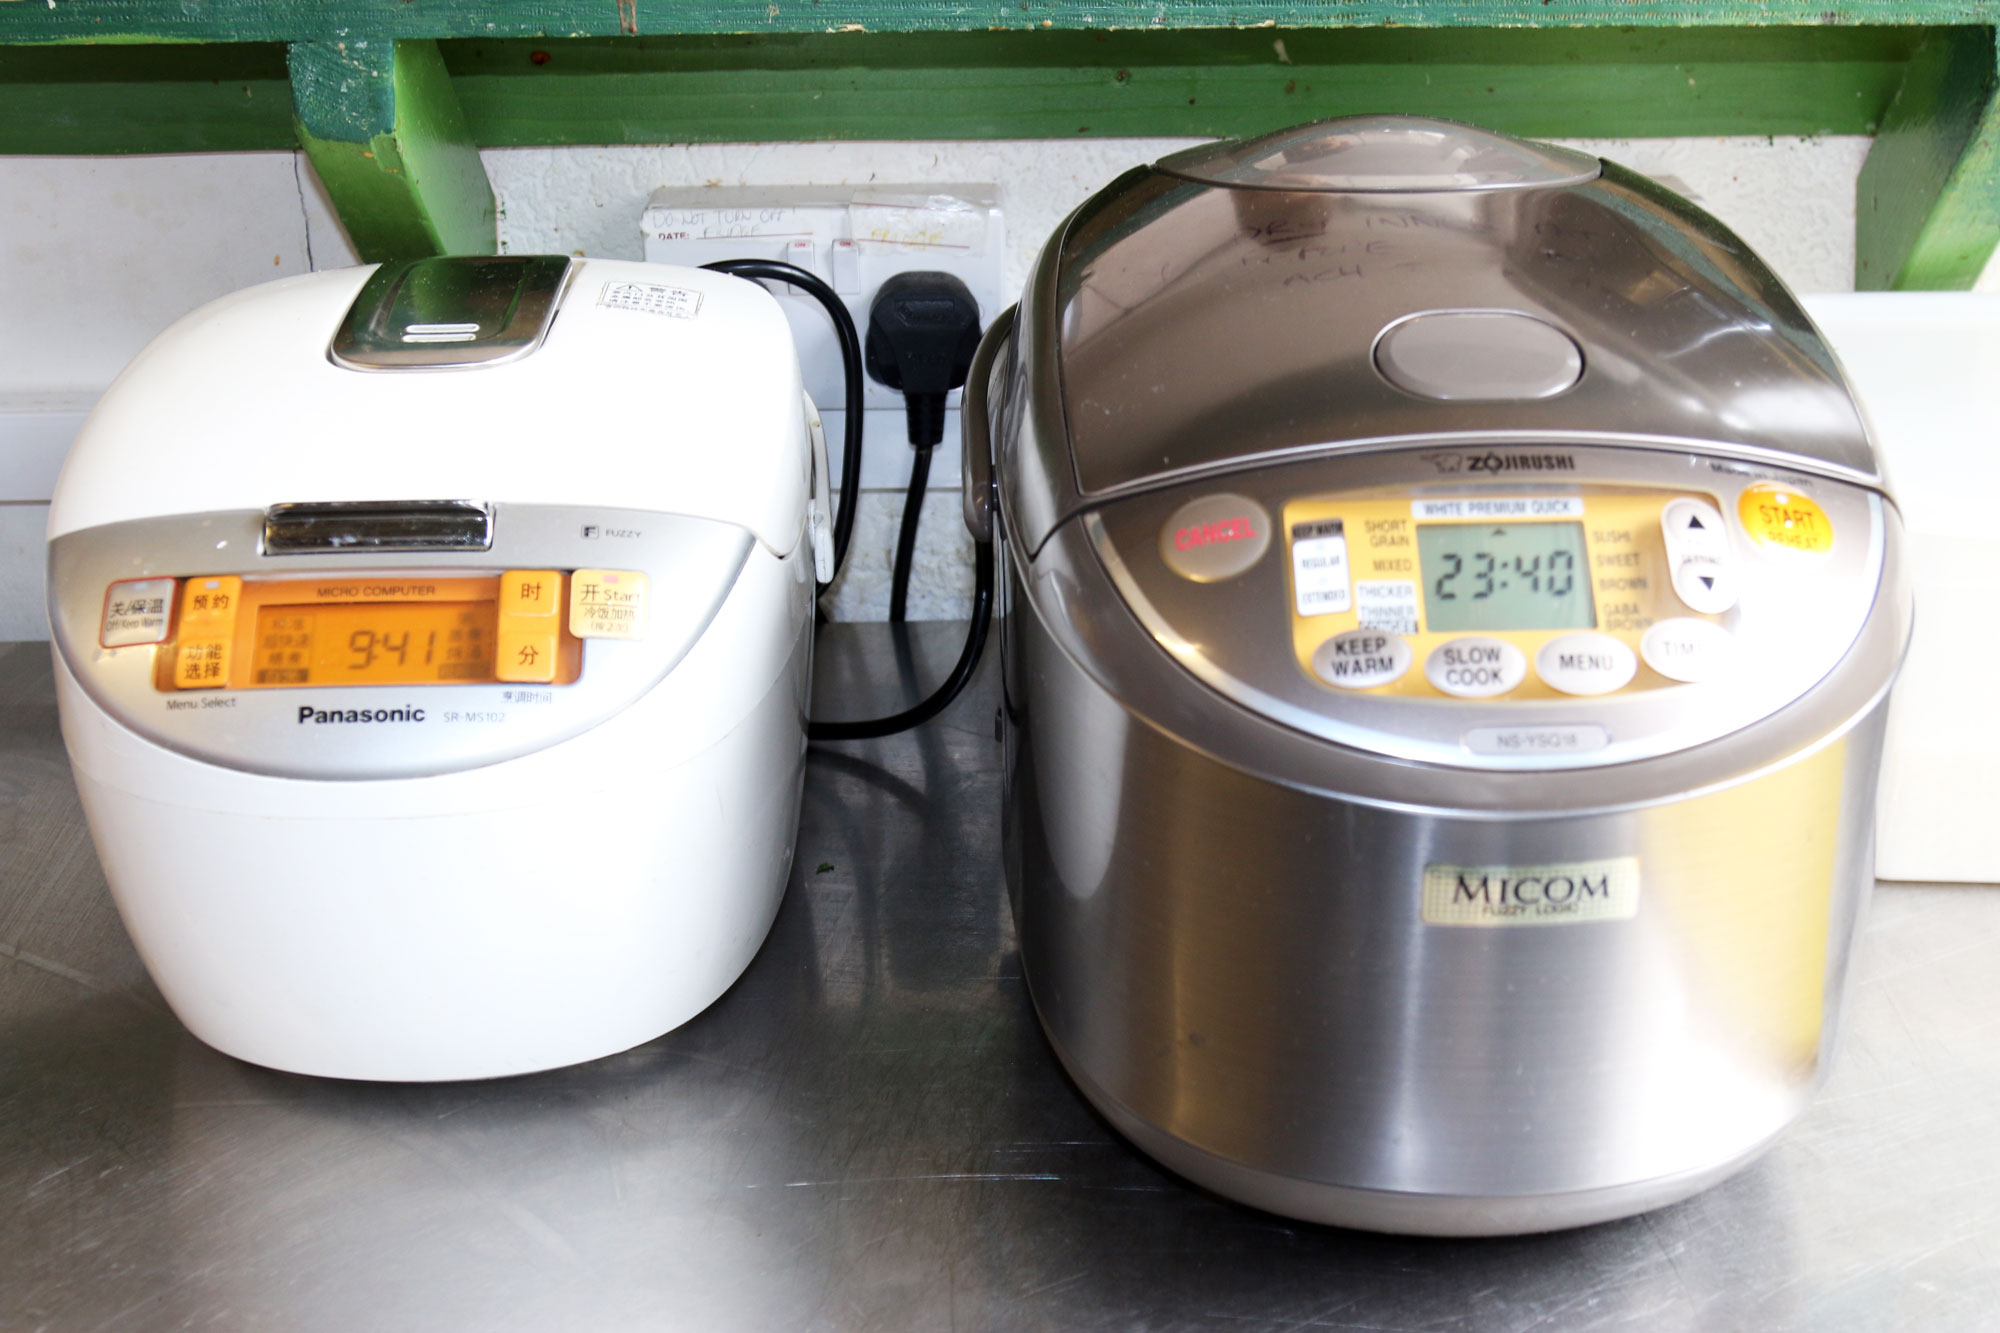 curio-and-tata-rice-cooker